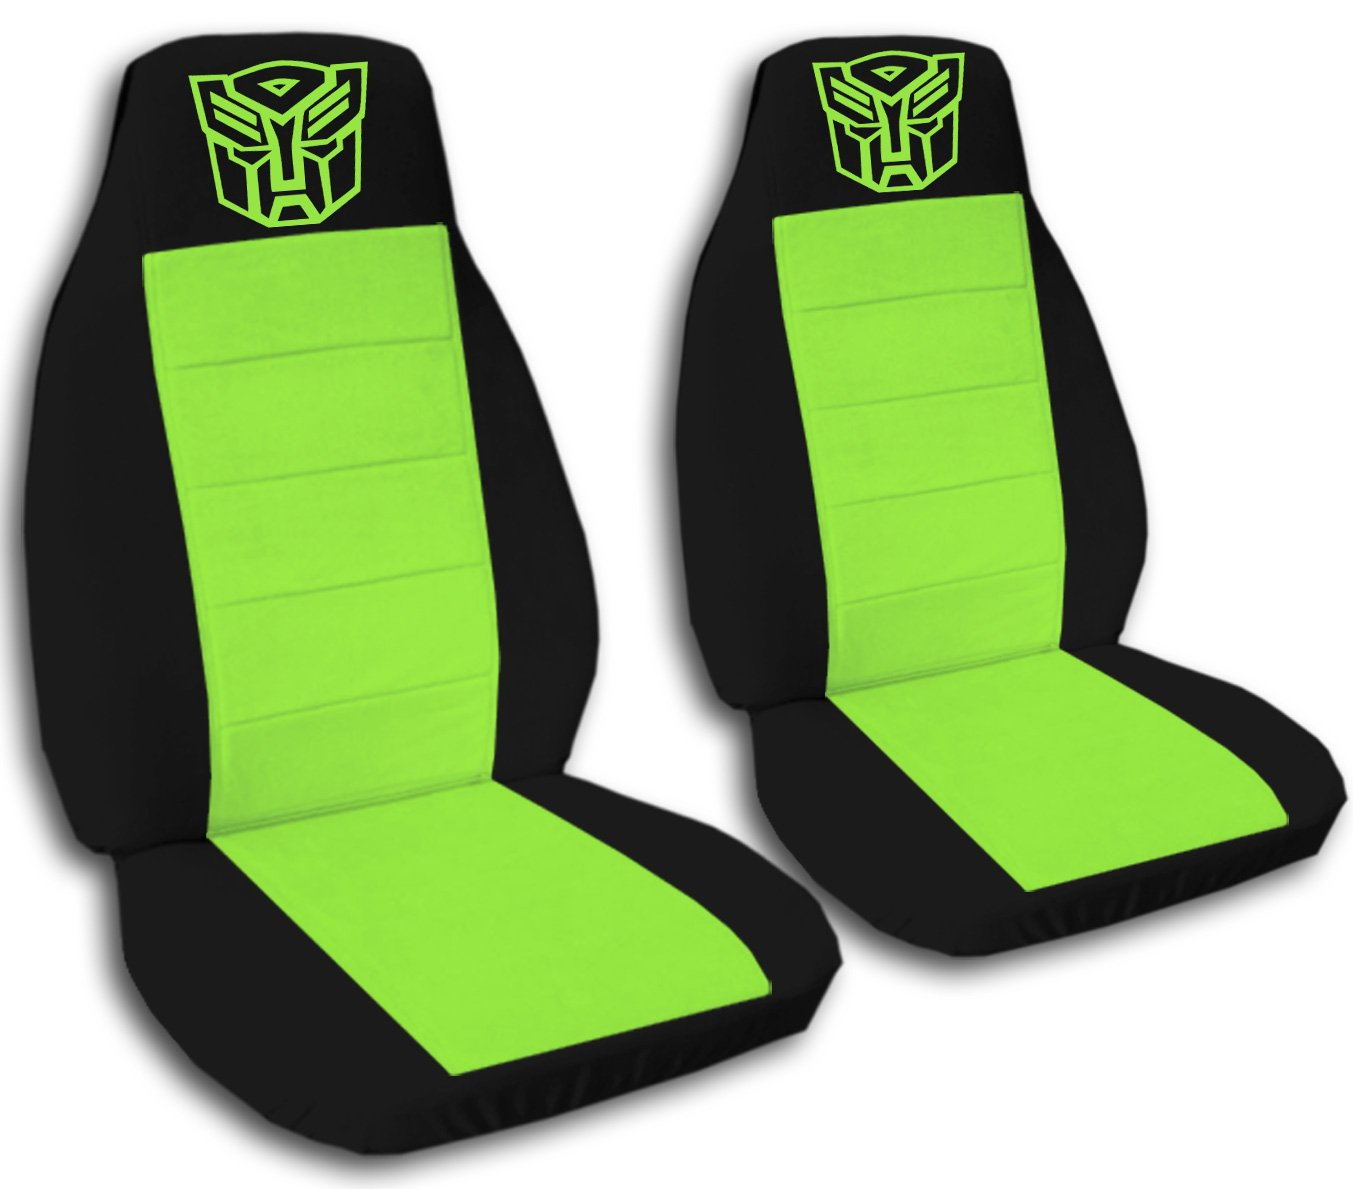 2 Black and Lime Green Robot seat covers for a 2005 to 2010 Jeep Grand Cherokee. men flats sneakers outdoor slip on causal fashion comfortable canvas low top shoes